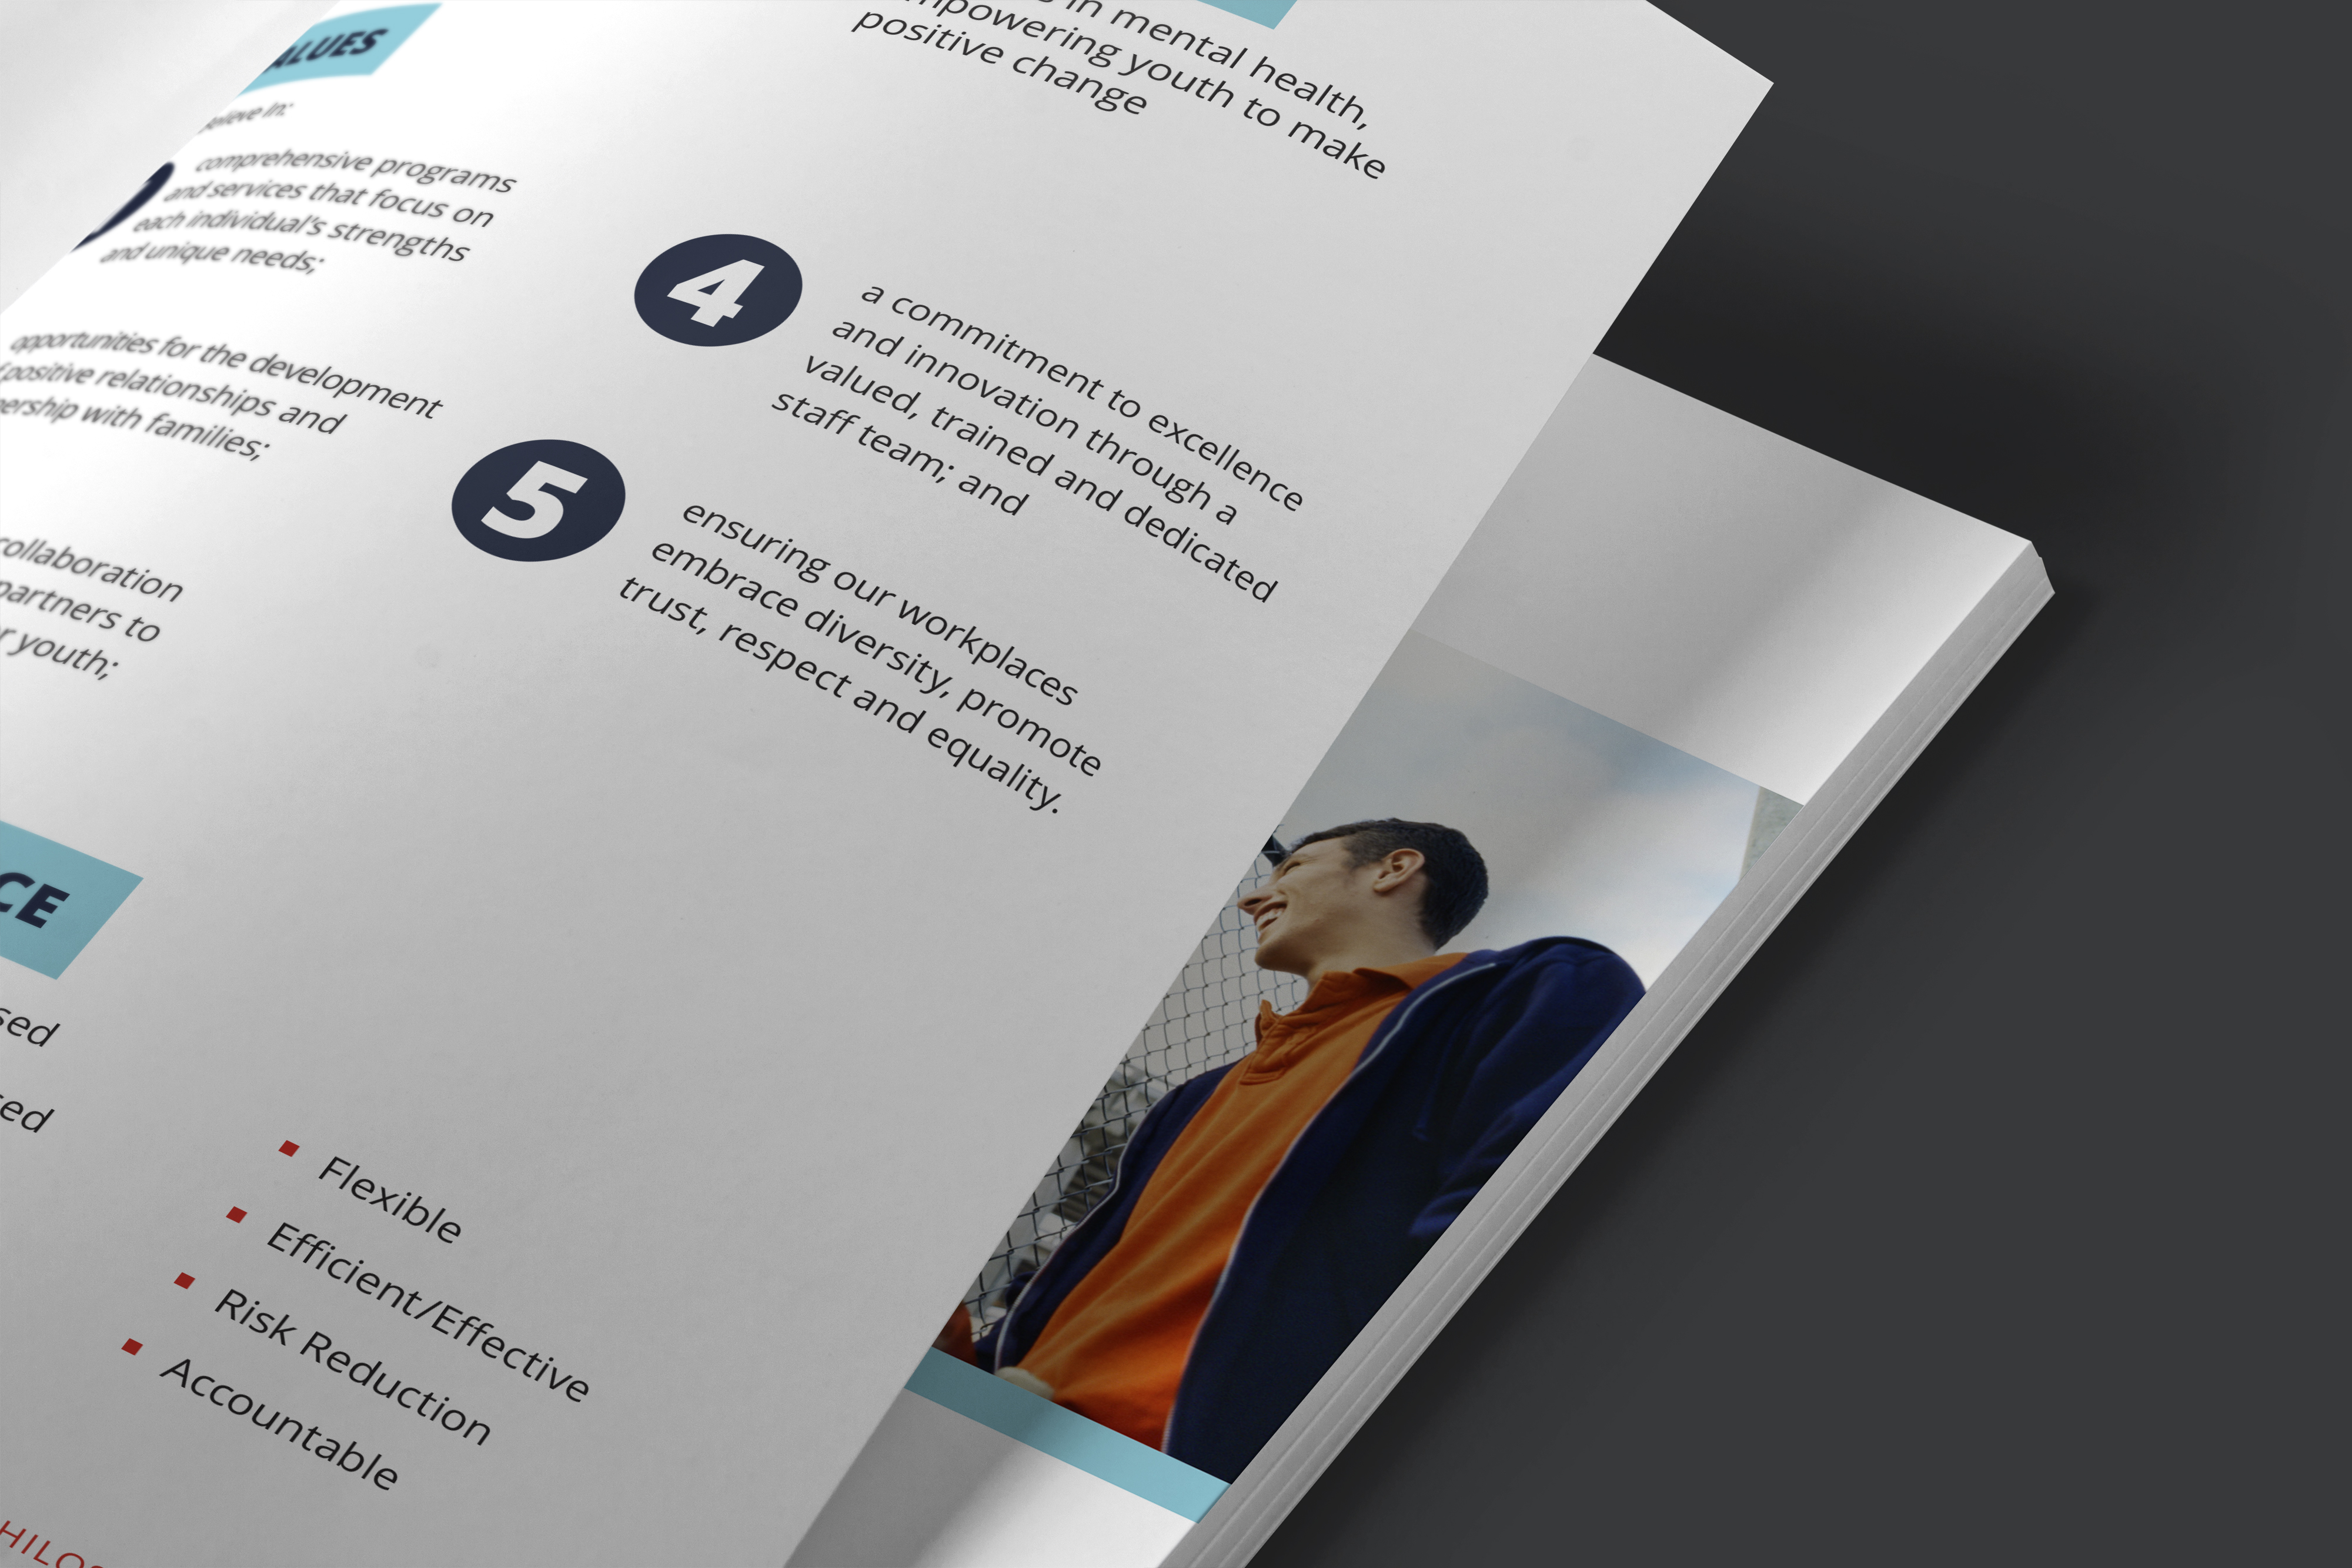 Turning Point Youth Services - Annual Report - Inside Spreads